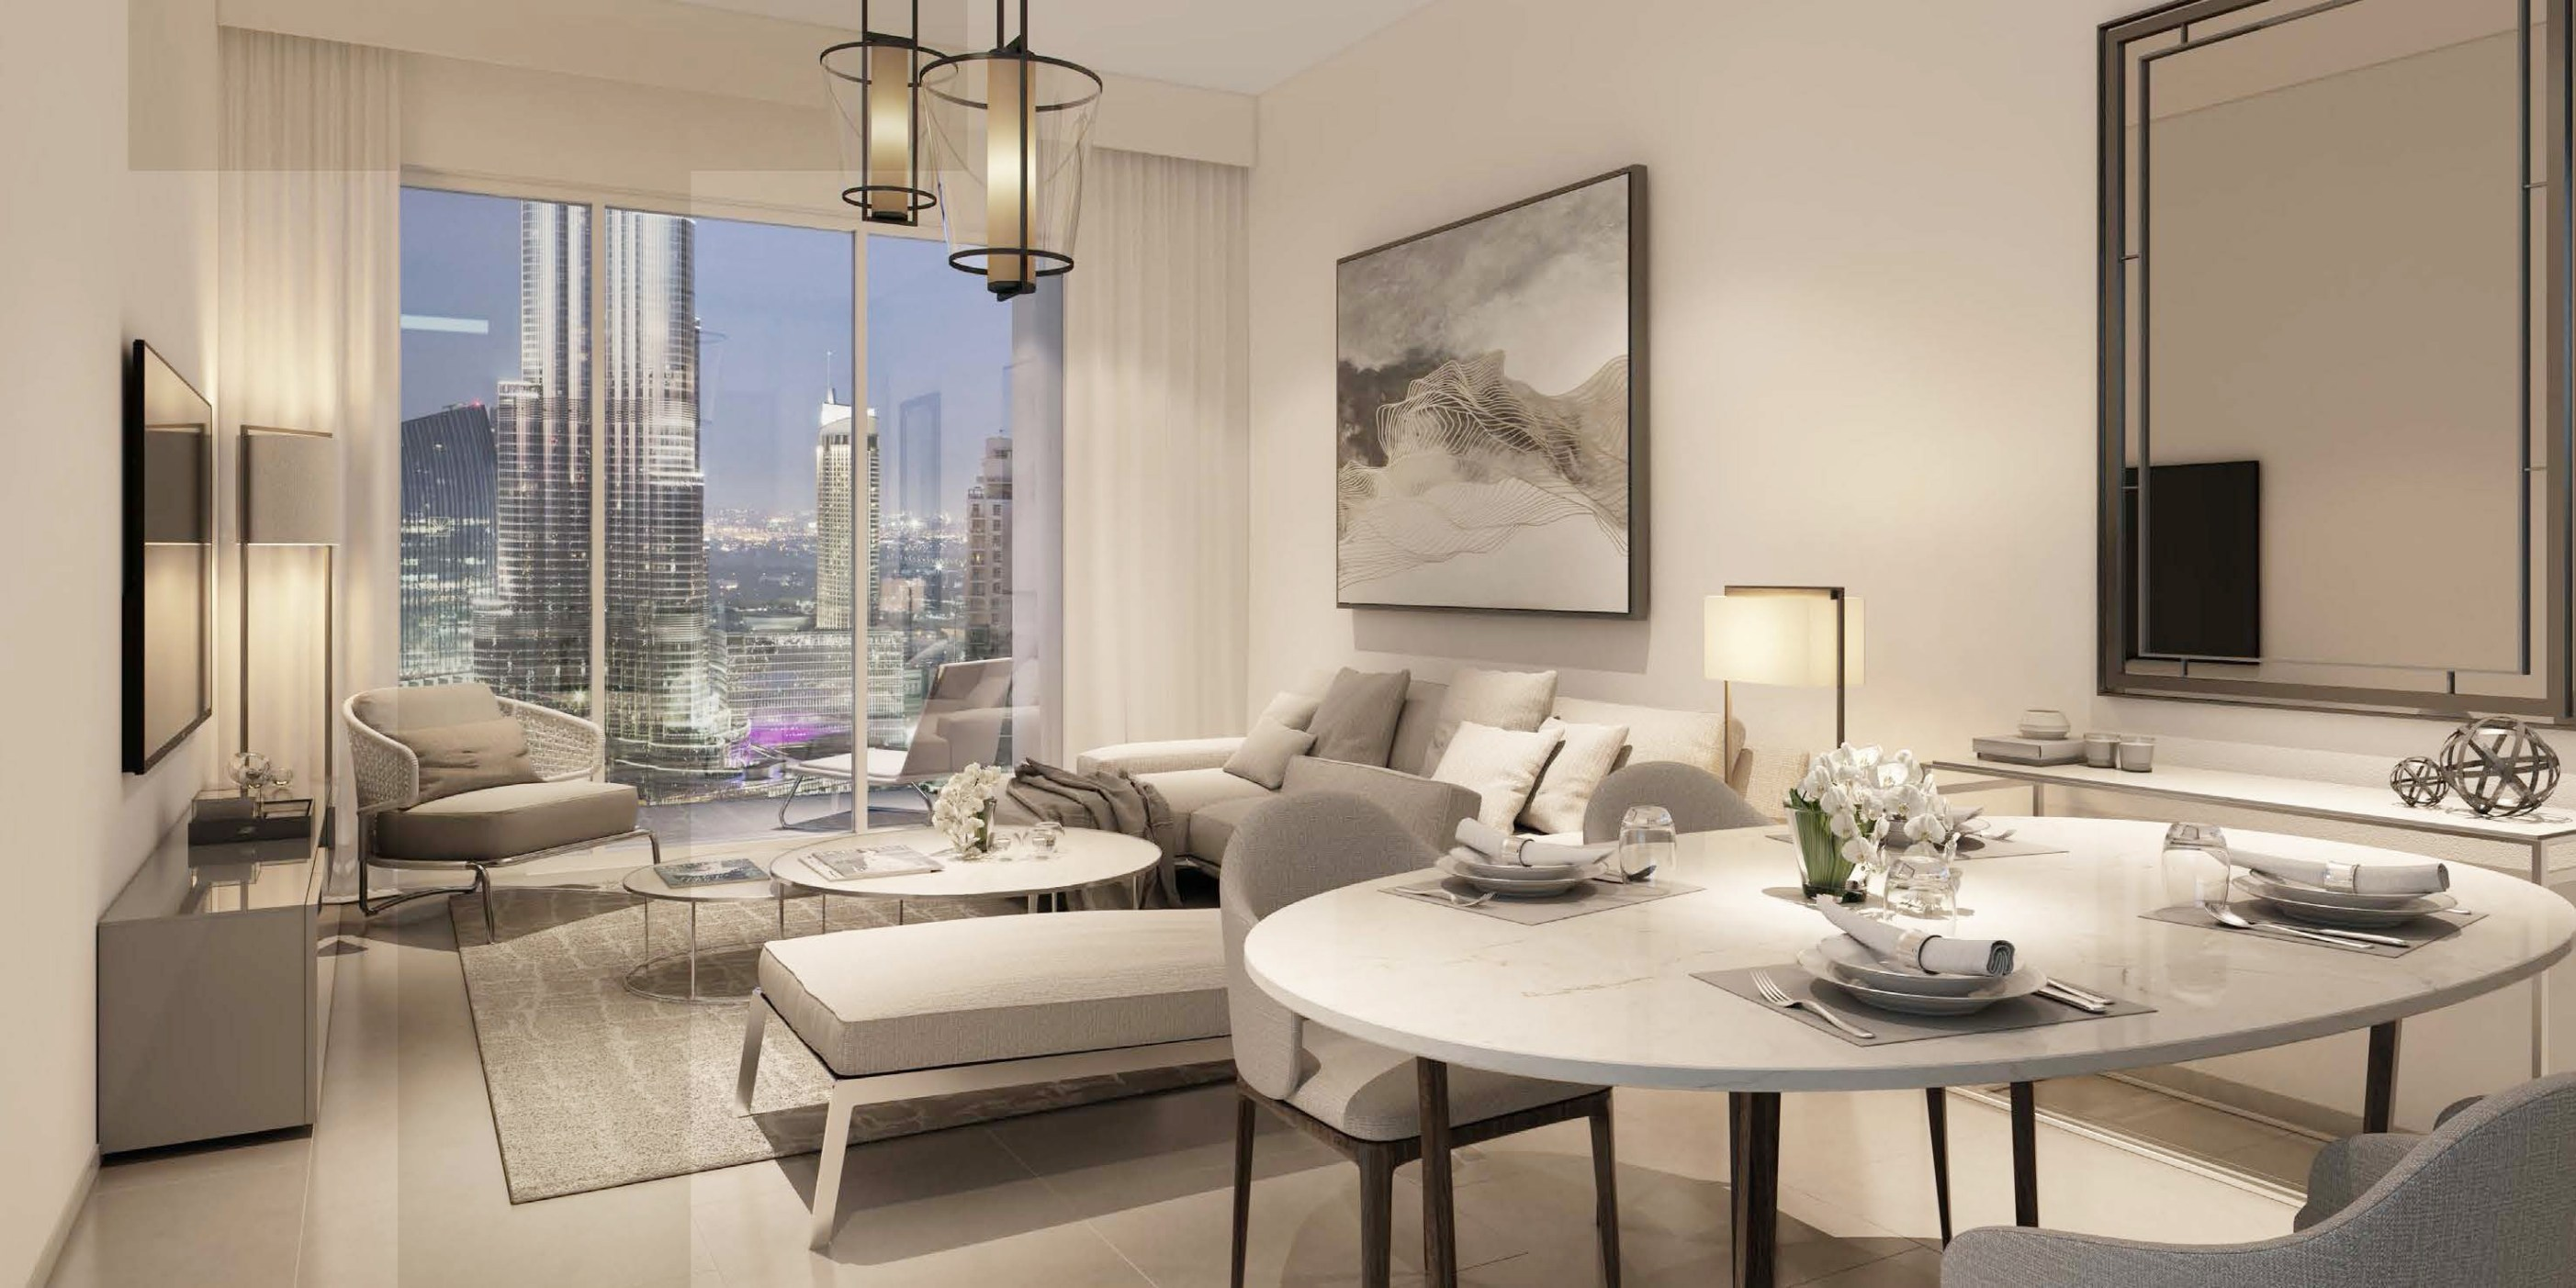 Act One Act Two Apartment Dubai with Burj Khalifa View